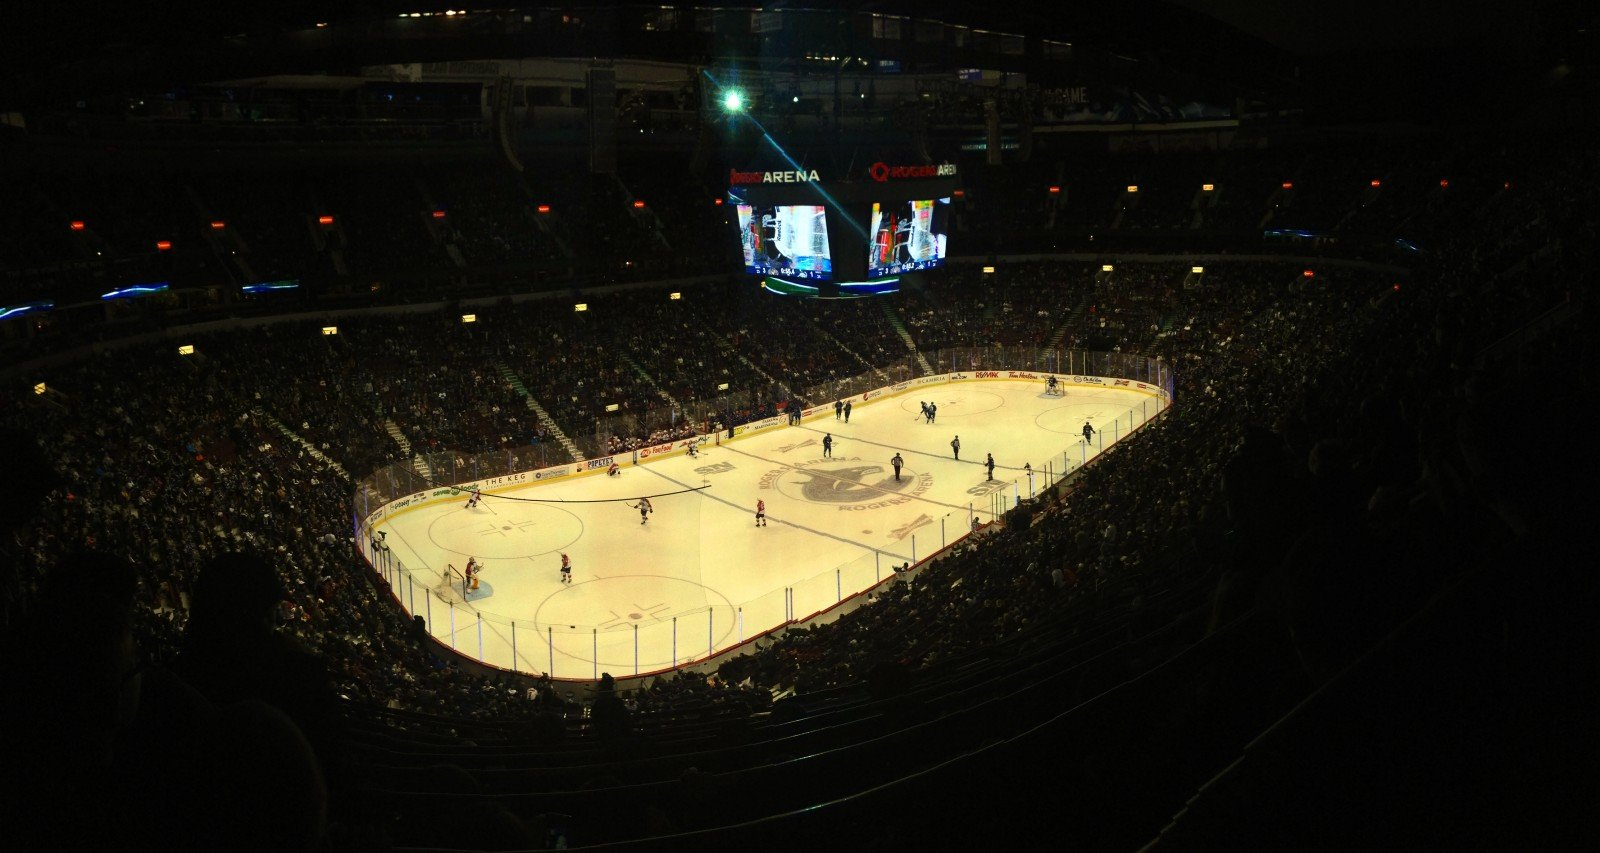 The Vancouver Canucks at Rogers Arena